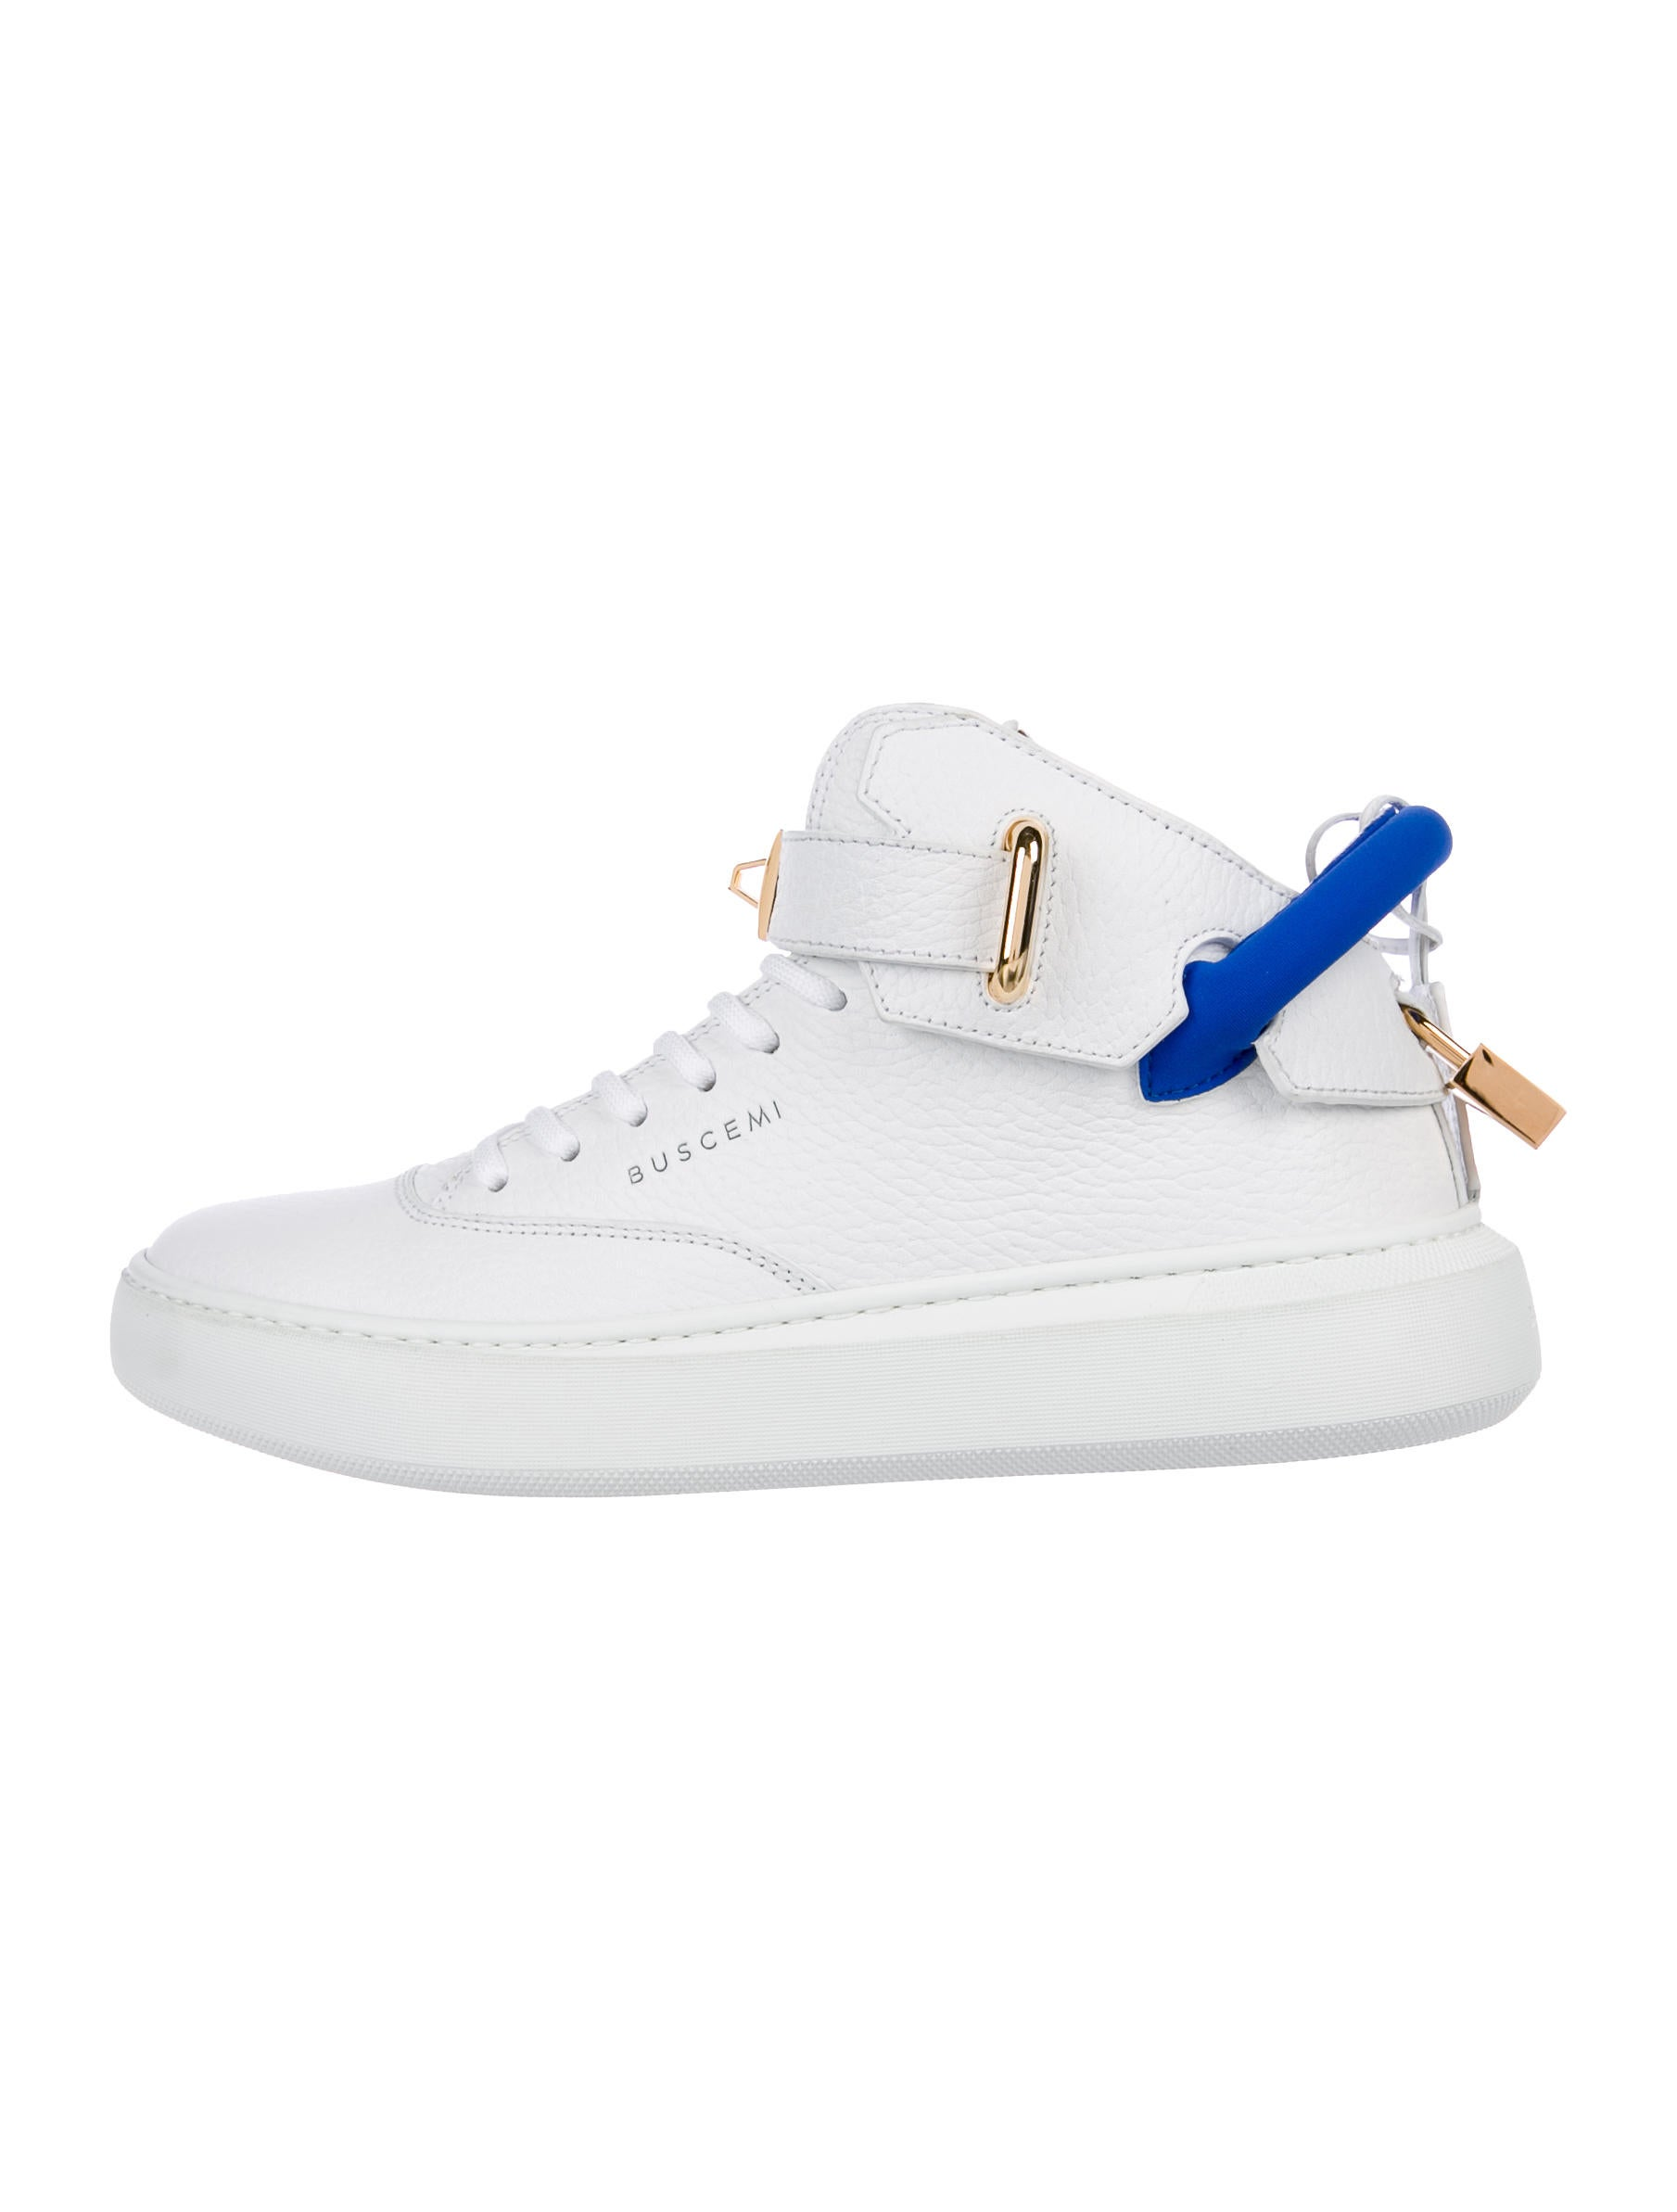 Buscemi High-Top Padlock Sneakers w/ Tags online sale low shipping for sale N0QJh6